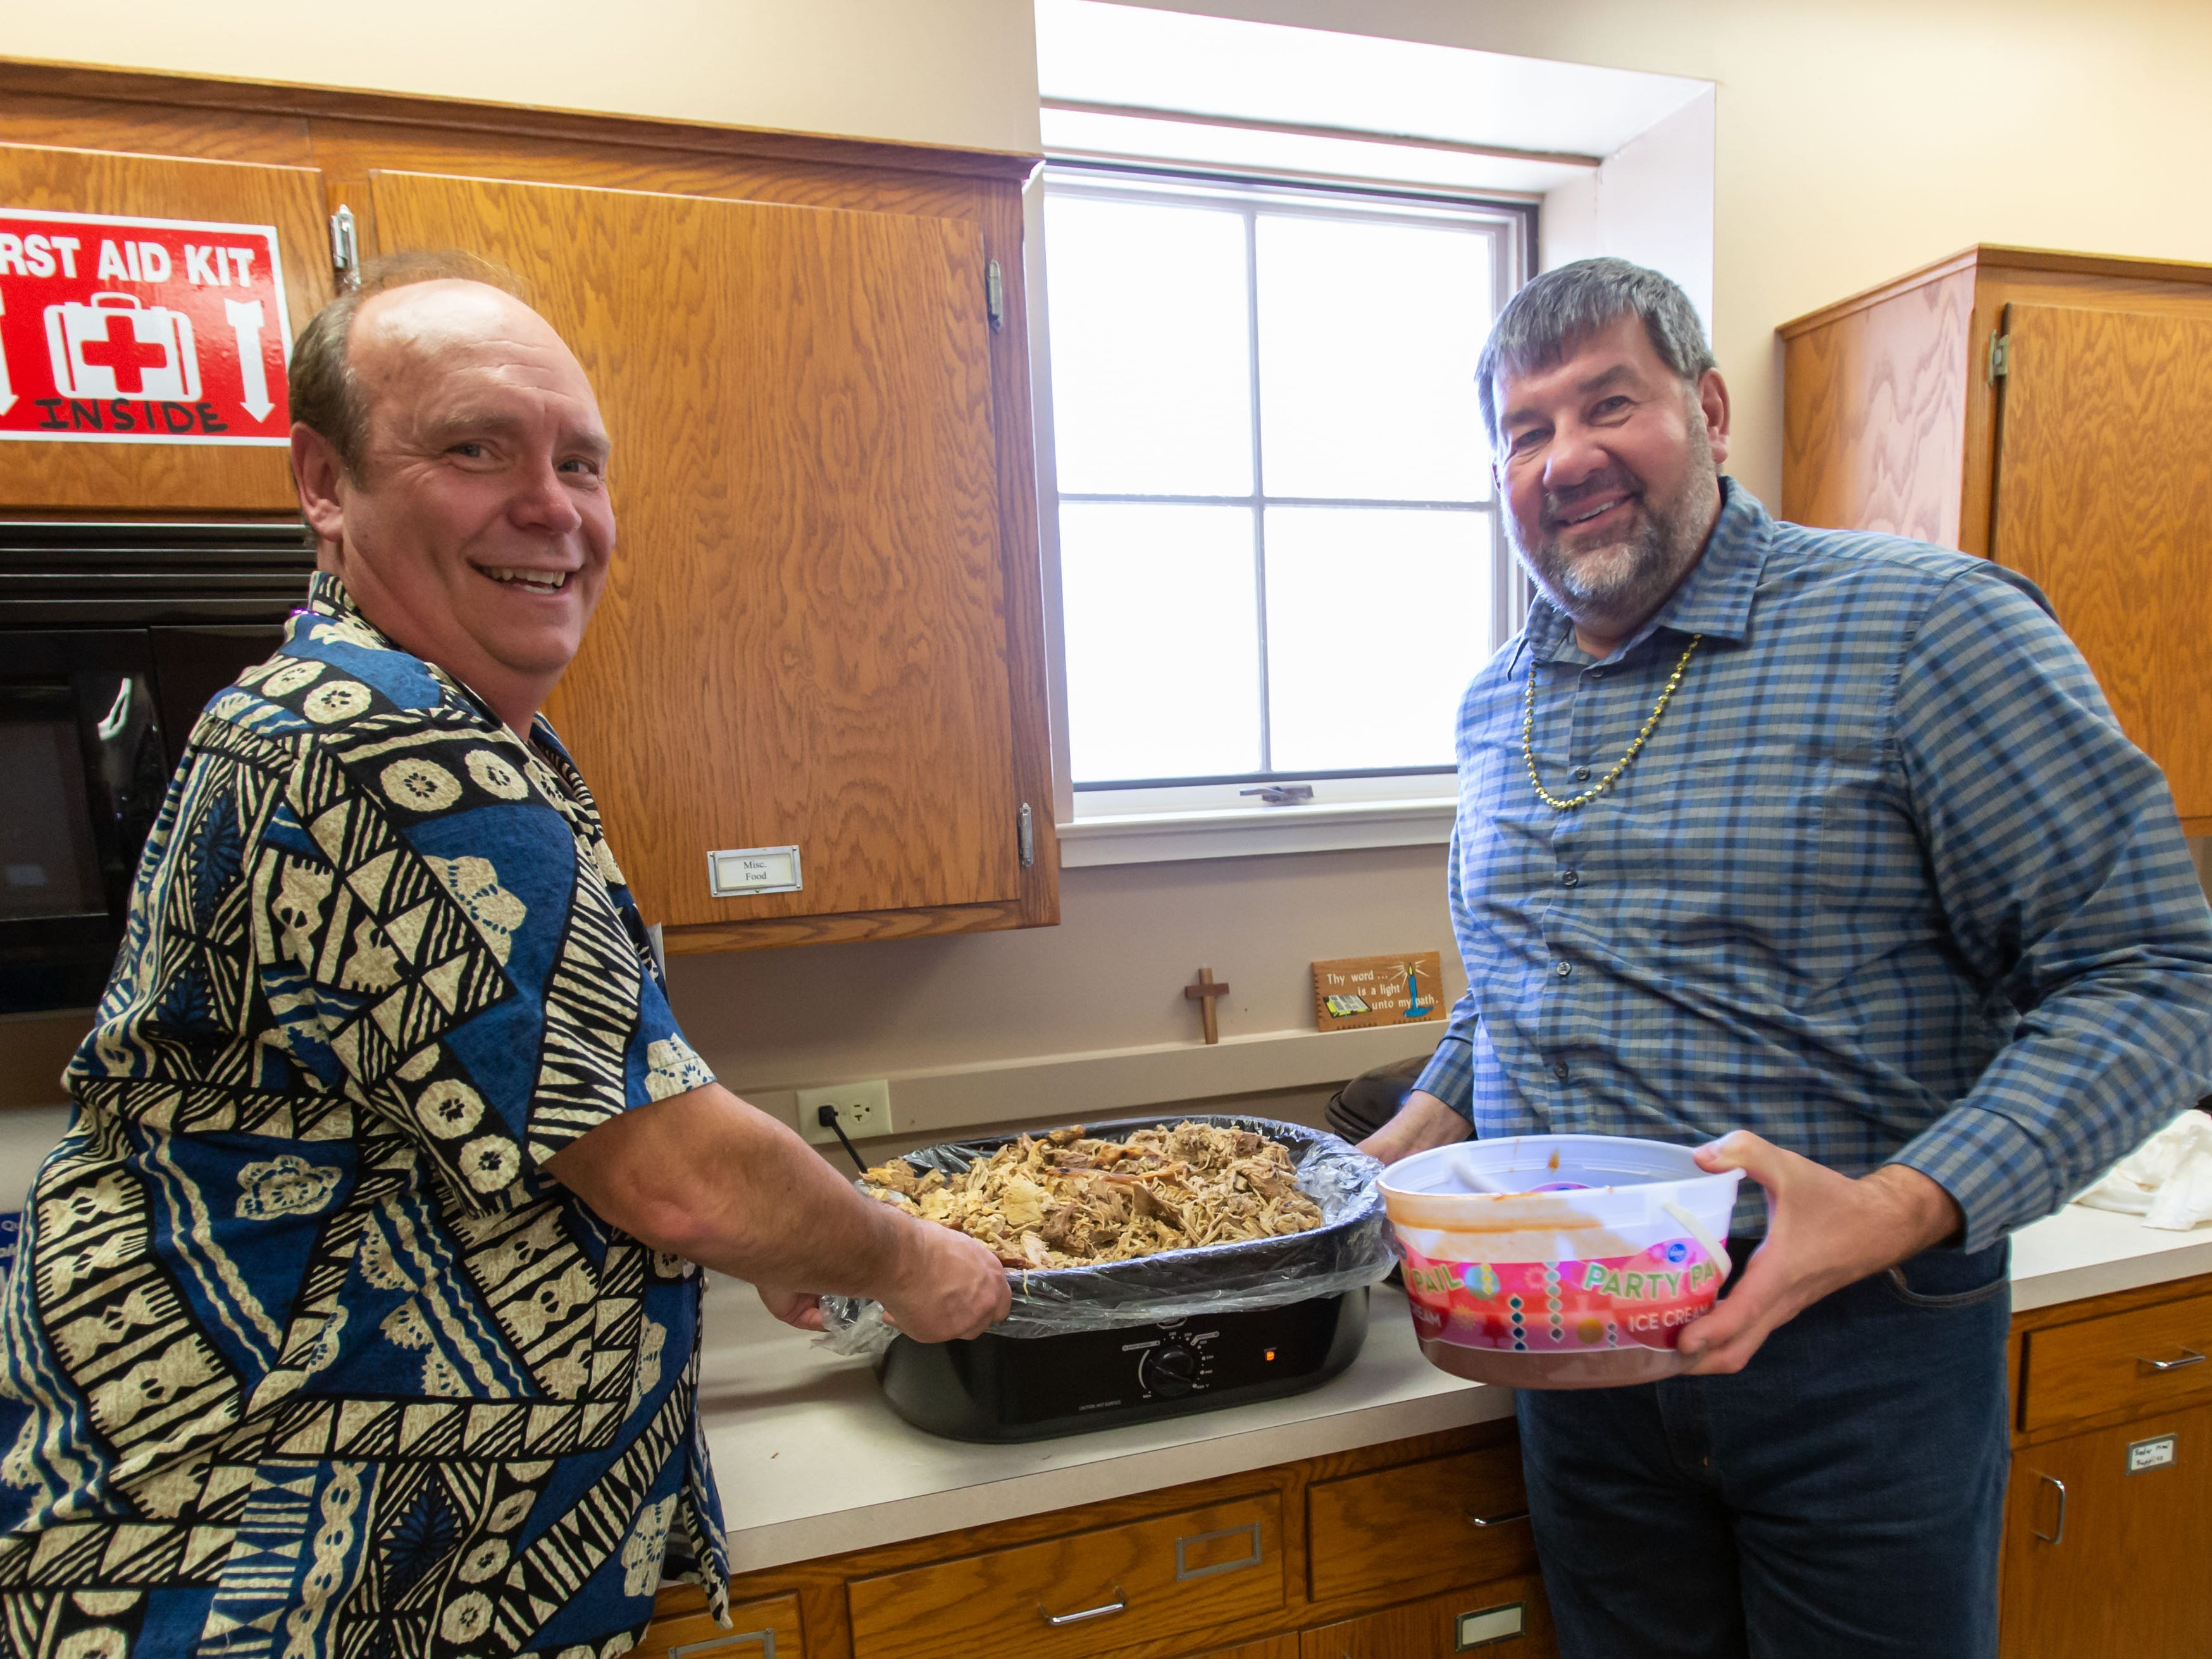 Mike Wolff and Eric Hackert of Cedarburg prepare a pot of shredded pork during the Mardi Gras Pig Roast and pie auction at Immanuel Lutheran Church in Cedarburg on Sunday, March 3, 2019.